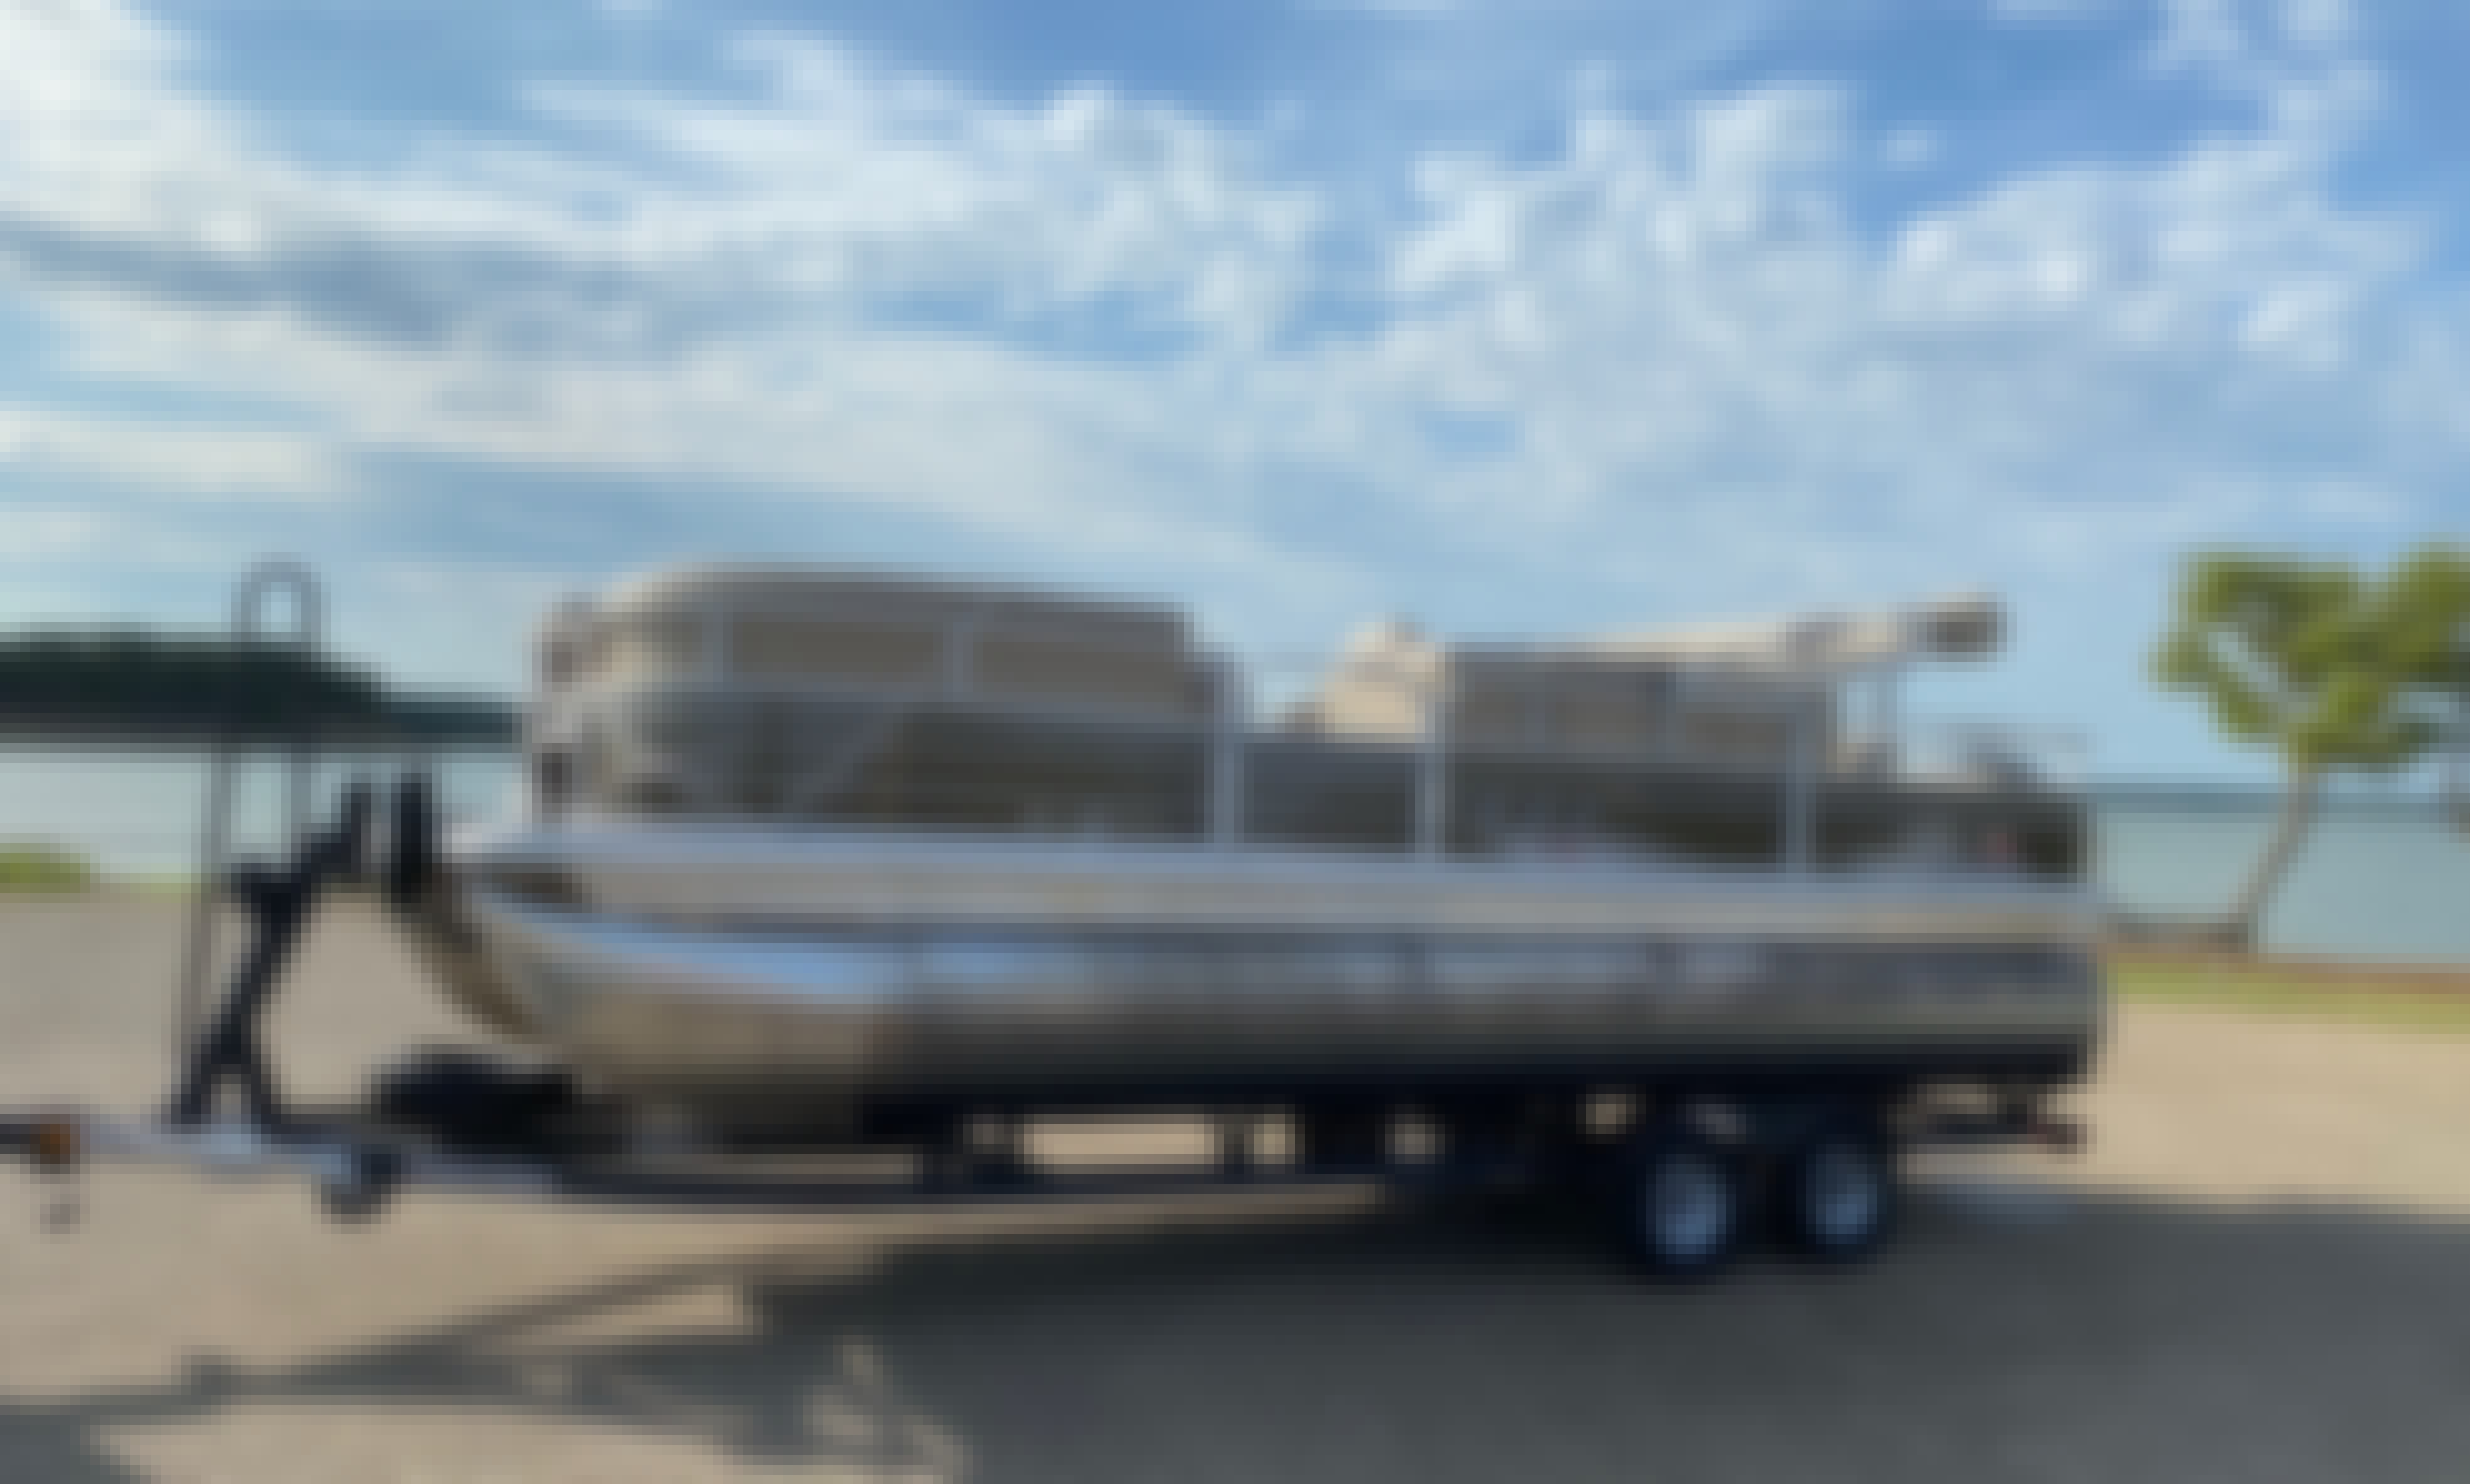 Rent or Charter this 22' Suntracker Pontoon in Grand Prairie or Grapevine, Texas